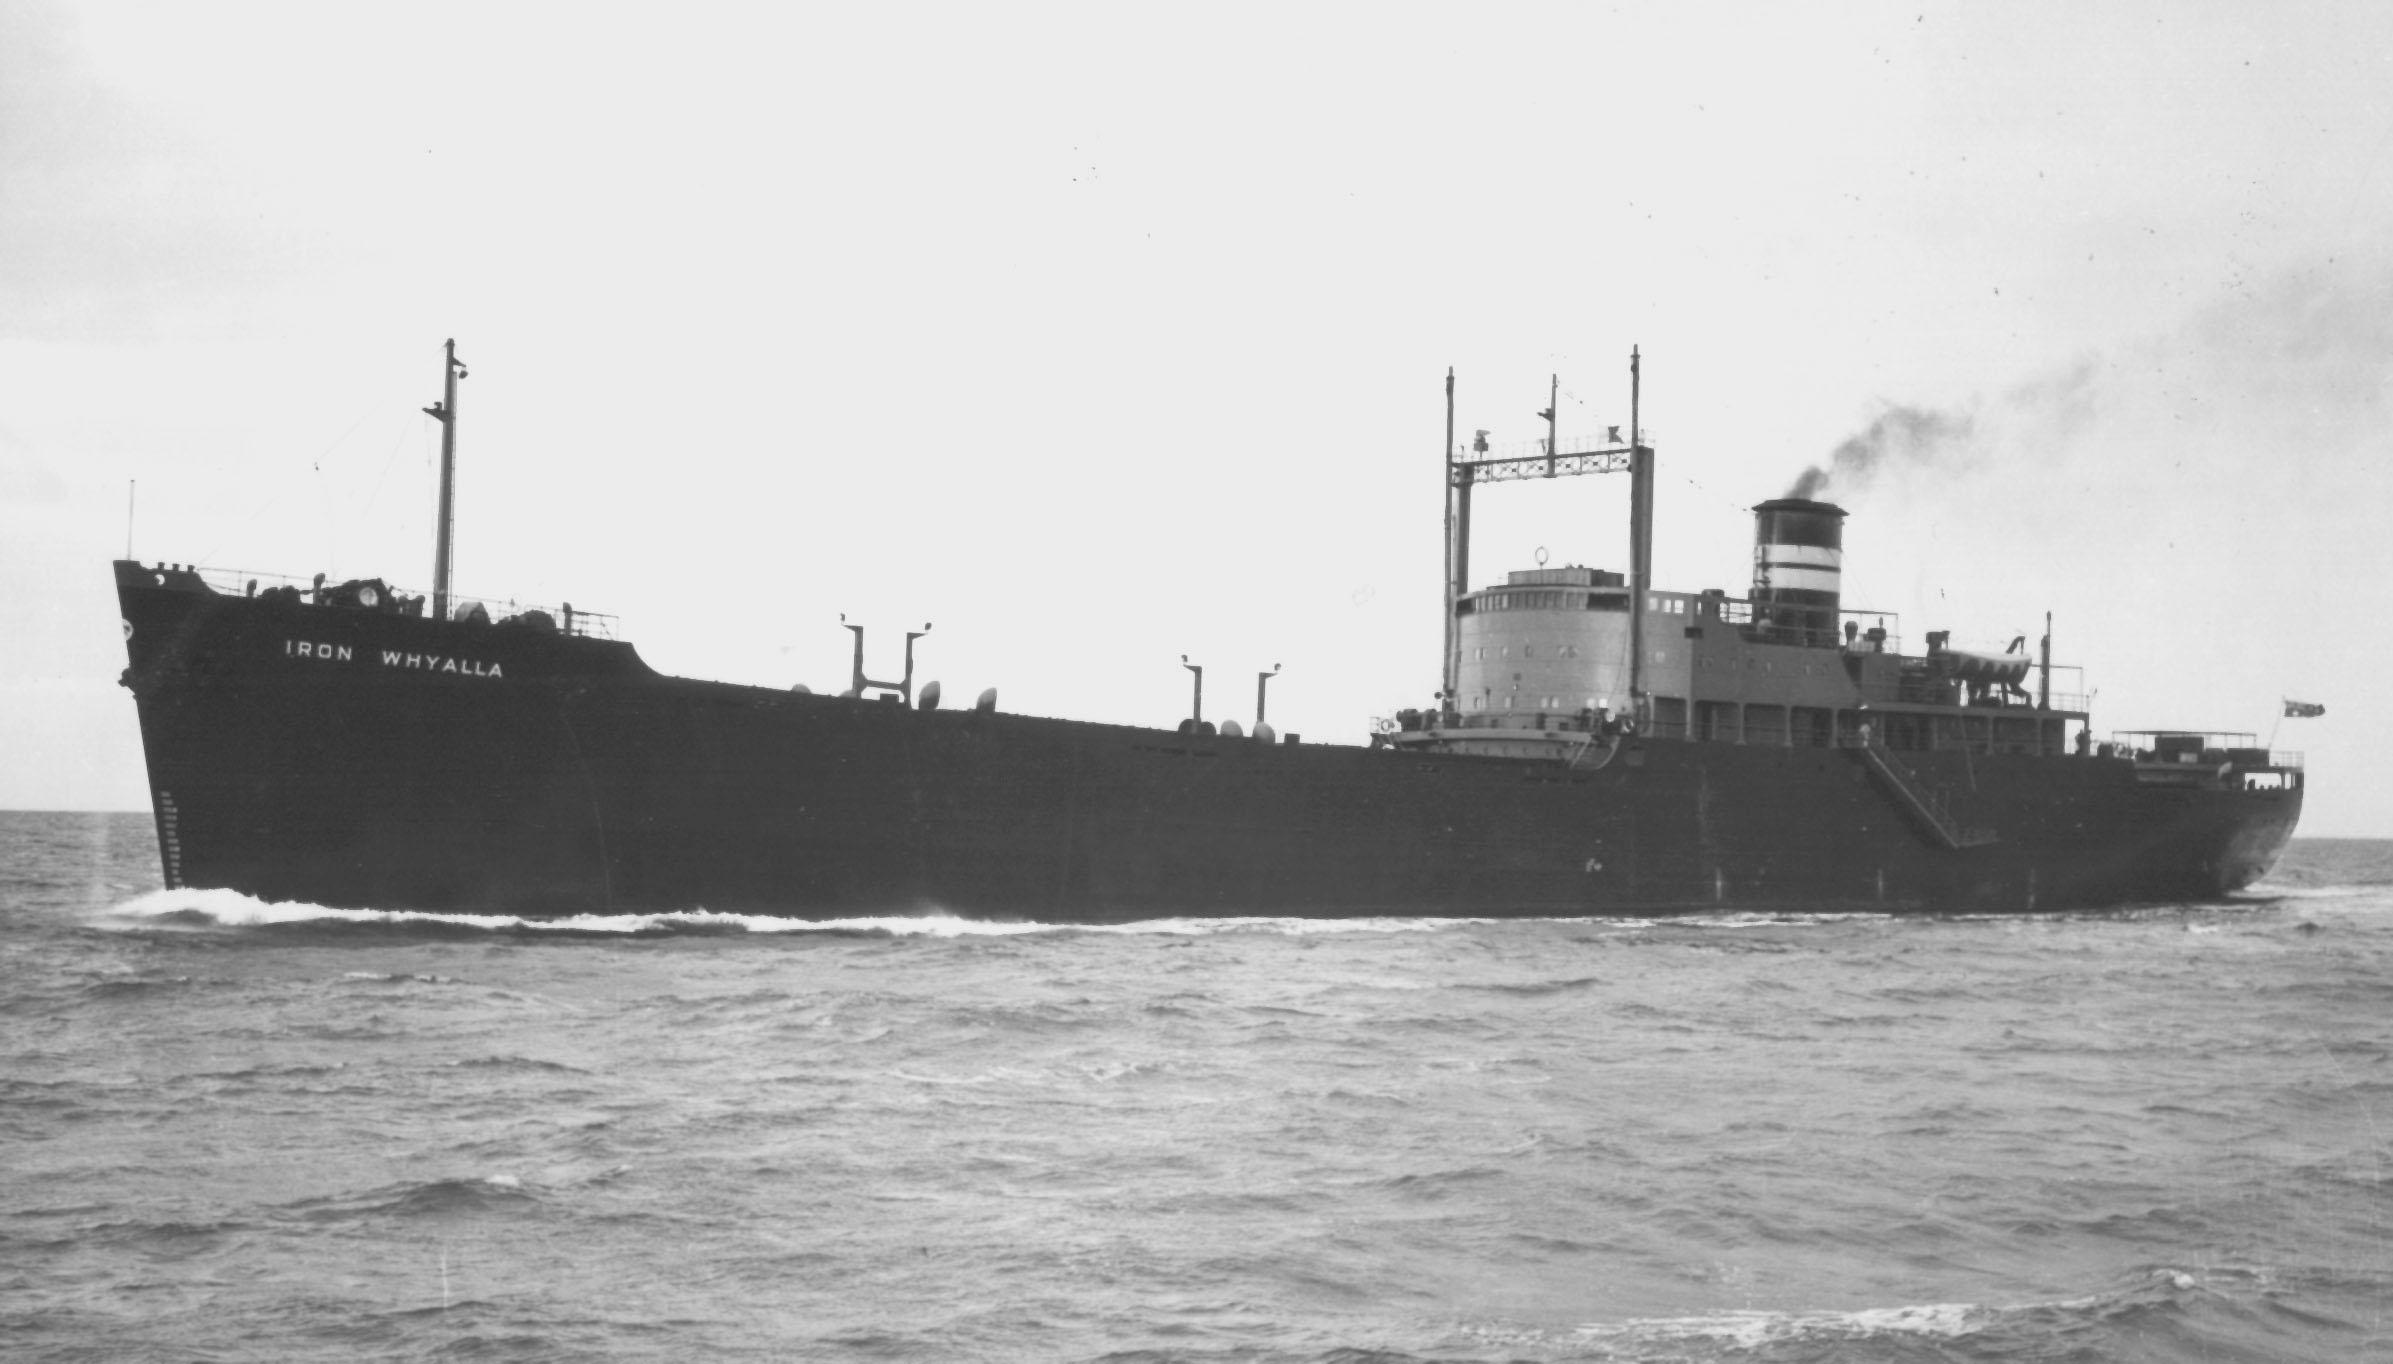 """General Cargo vessel """"Iron Whyalla"""".  Built in Whyalla in 1954, employed in stell trades, and owned by Broken Hill Pty Co Ltd. Official Number:  177245 Dimensions:  length 489'0"""", breadth 62'1"""", draught 25'91/4"""" Port Of Registry:  Melbourne Flag:  Bri"""